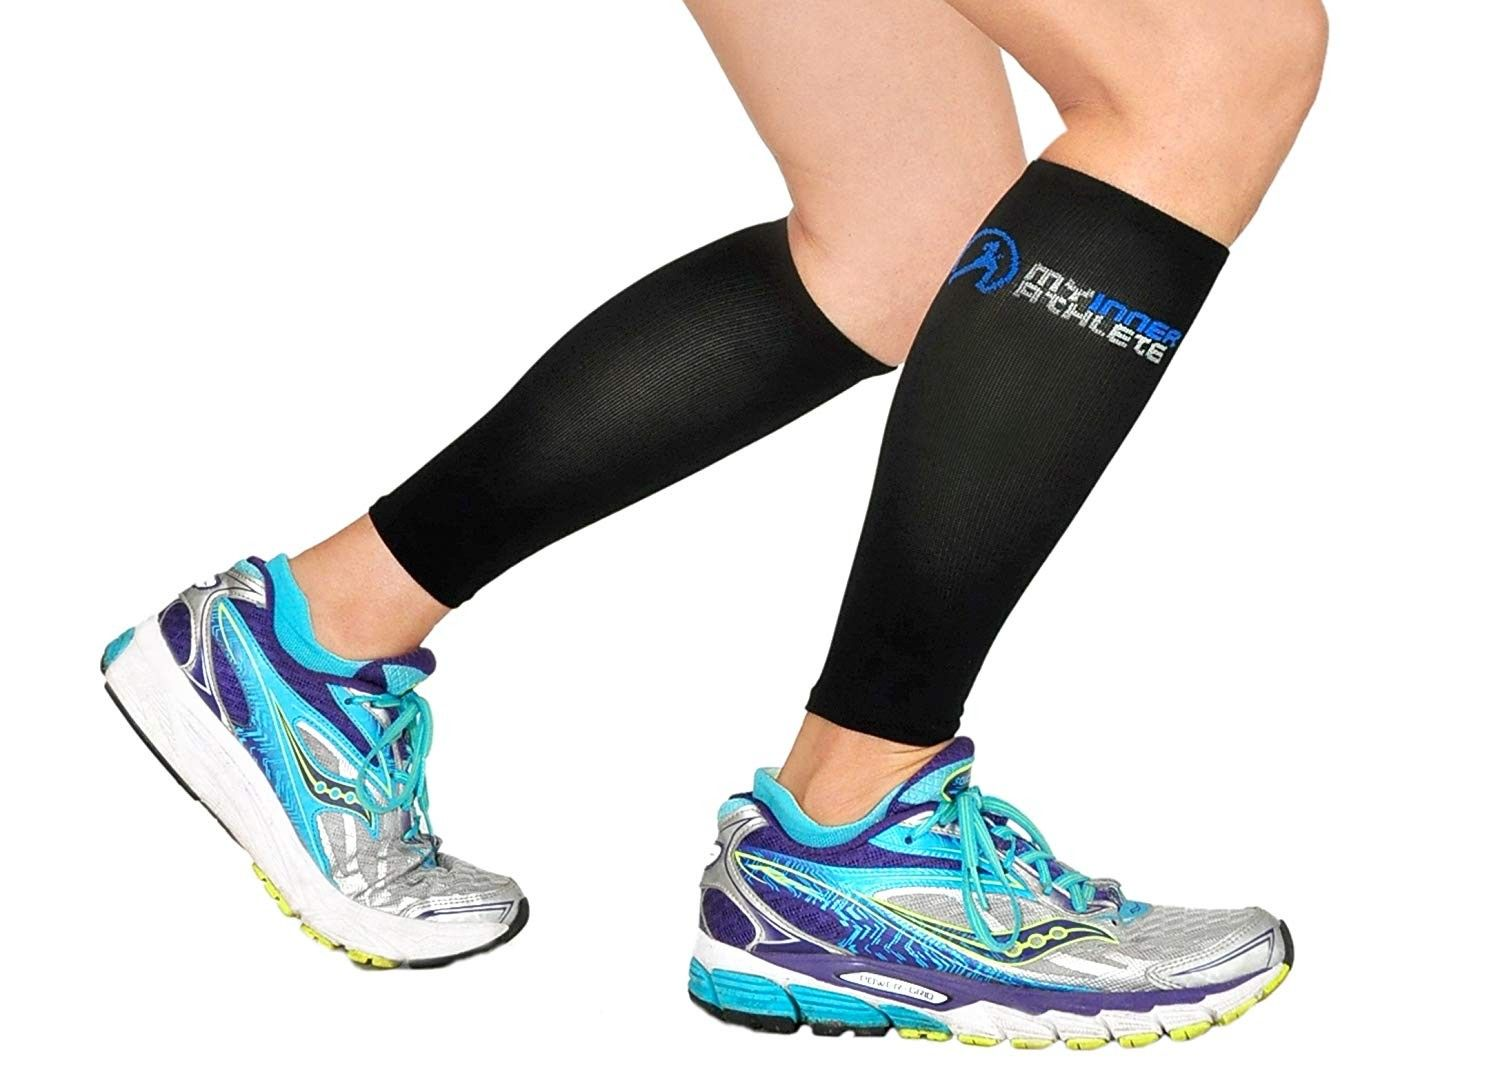 Compression Sleeves Graduated Designed Physician - Black - CT128HJOQTN - Sports & Fitness Clothing,...